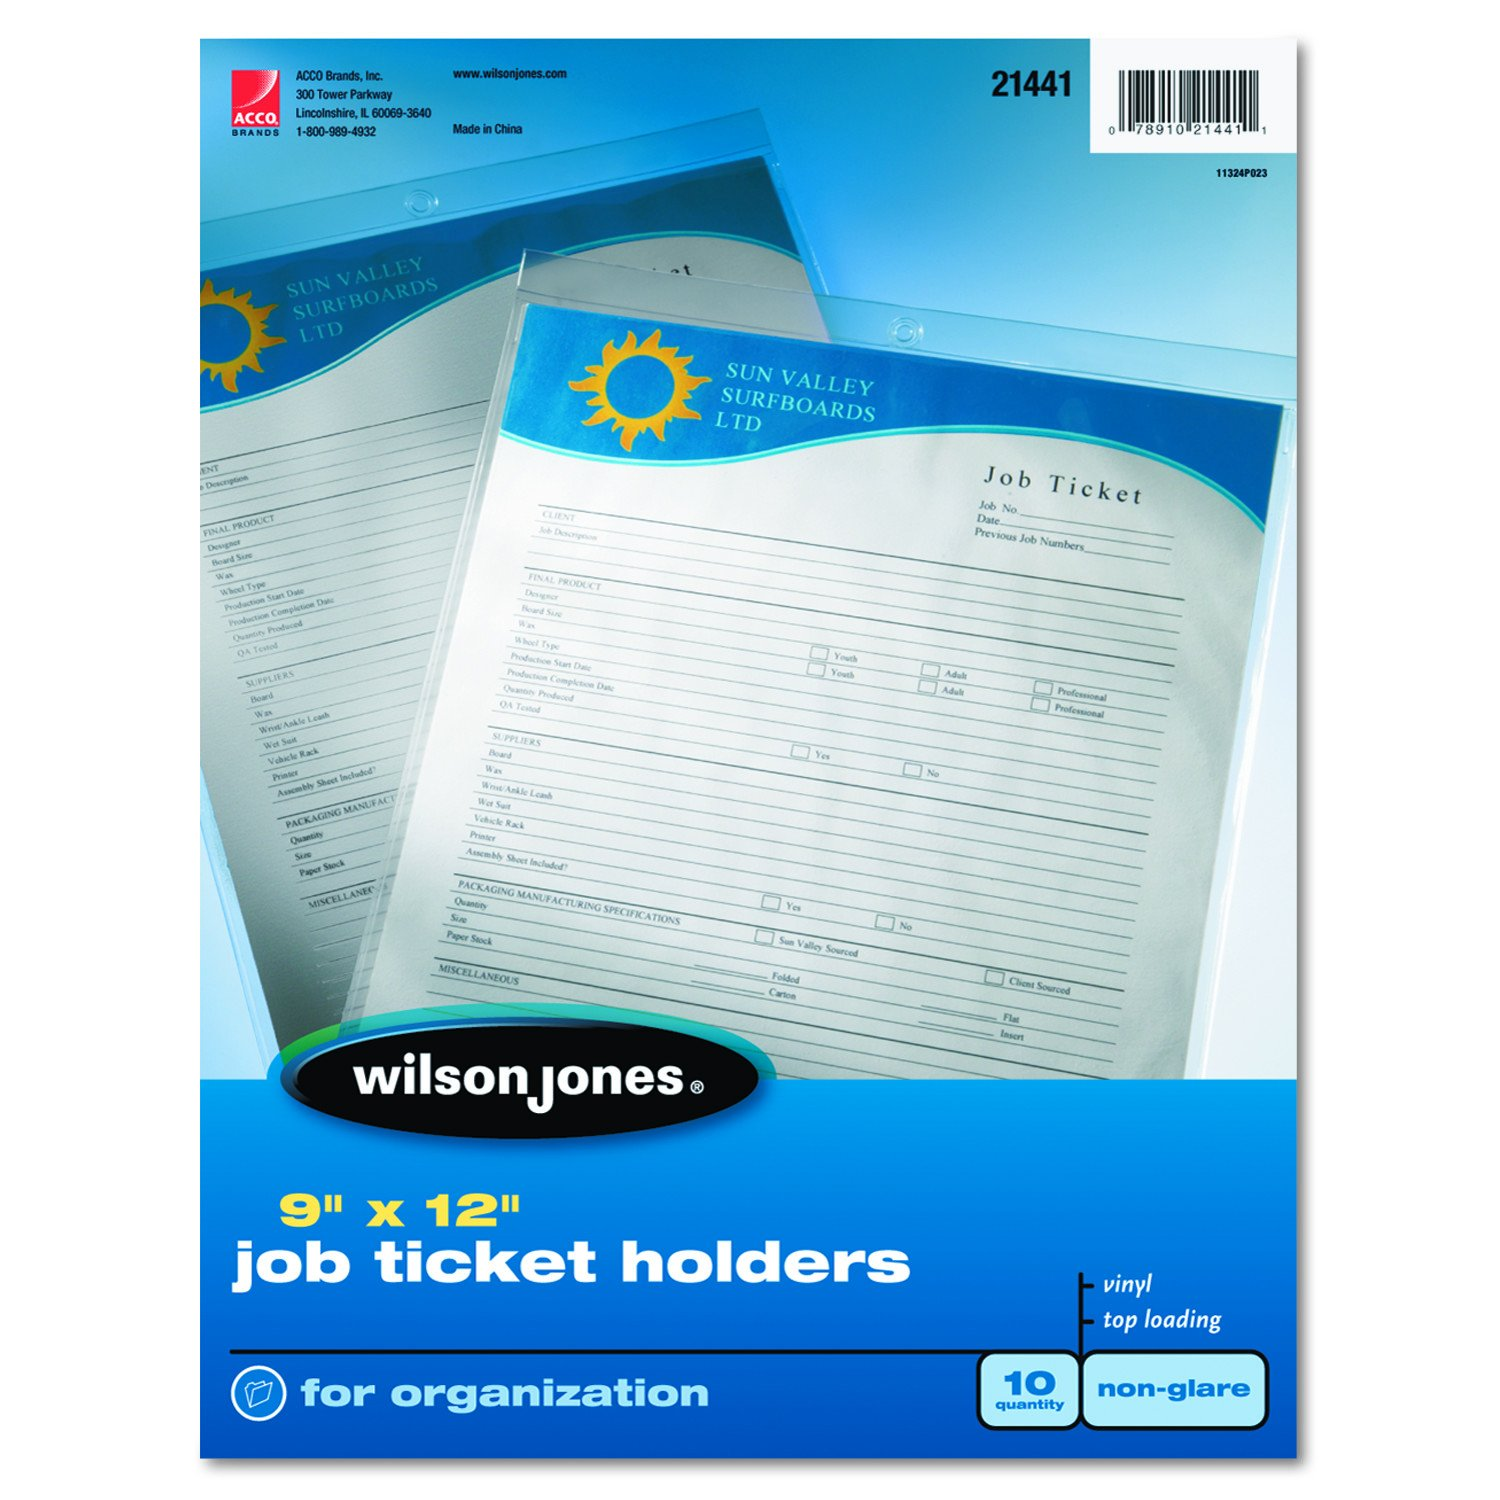 Wilson Jones Ticket Holder, Non-Glare Finish, Clear Front/Frosted Back, 10 per Pack (21441) ACCO Brands